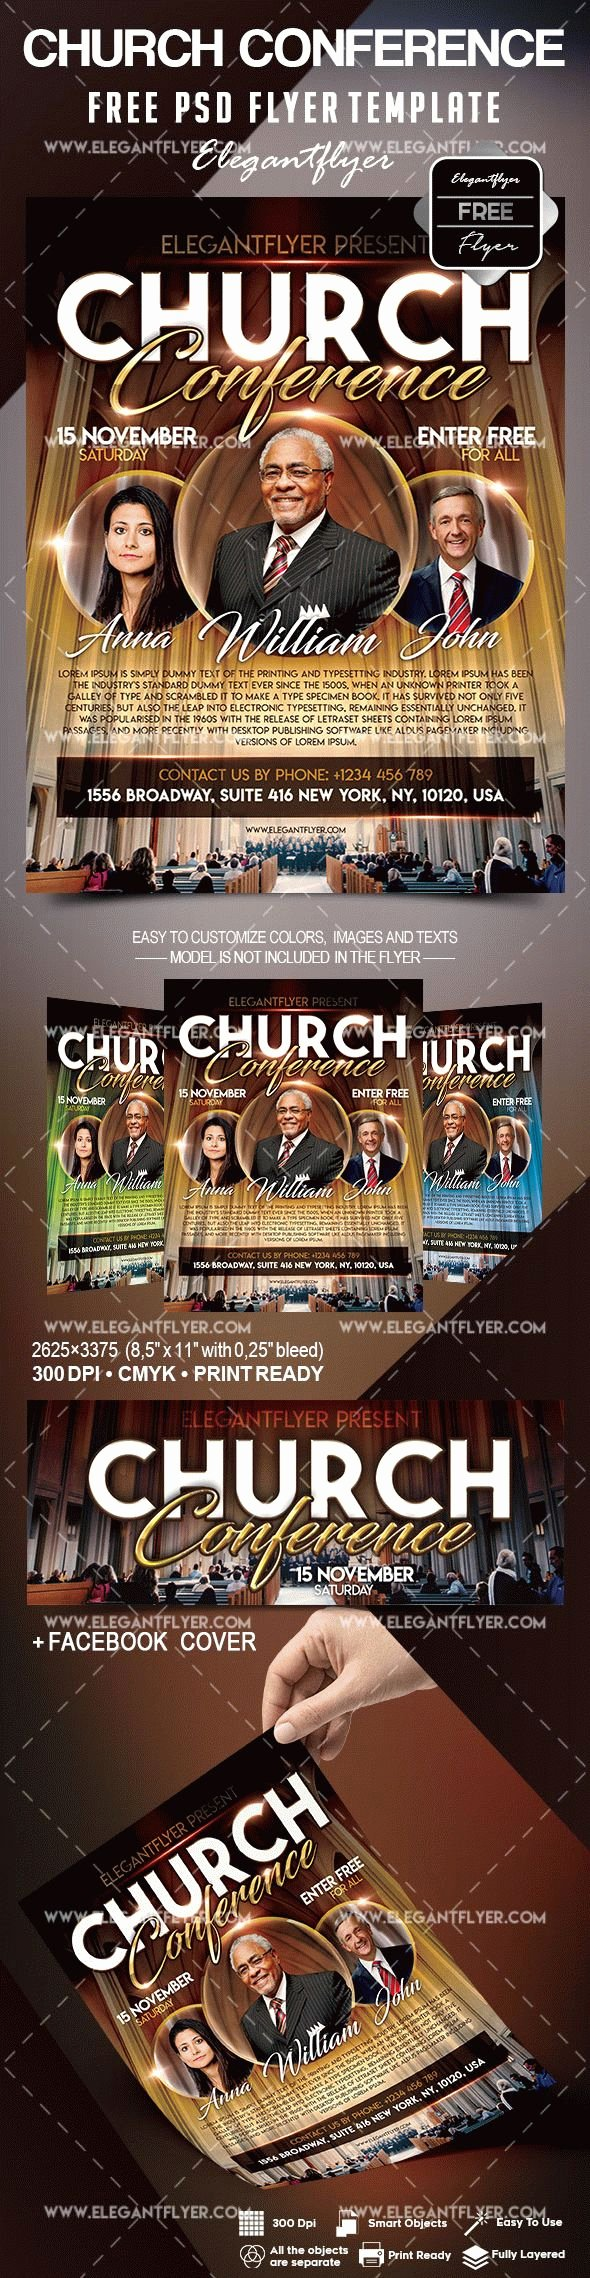 Free Church Flyer Templates Elegant Free Church Conference Flyer Template – by Elegantflyer